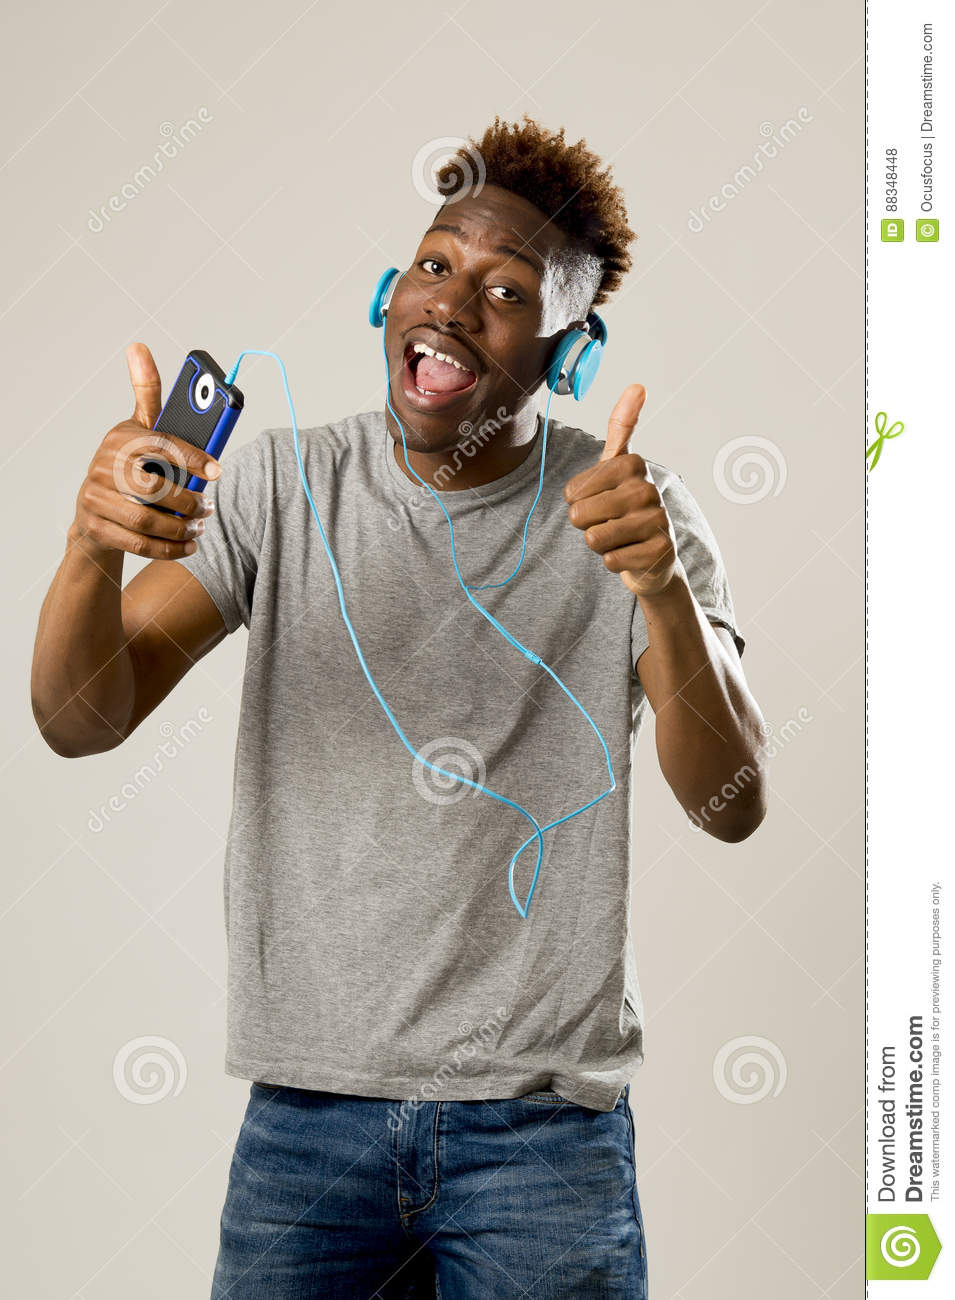 black student man with headphones and mobile phone listening to